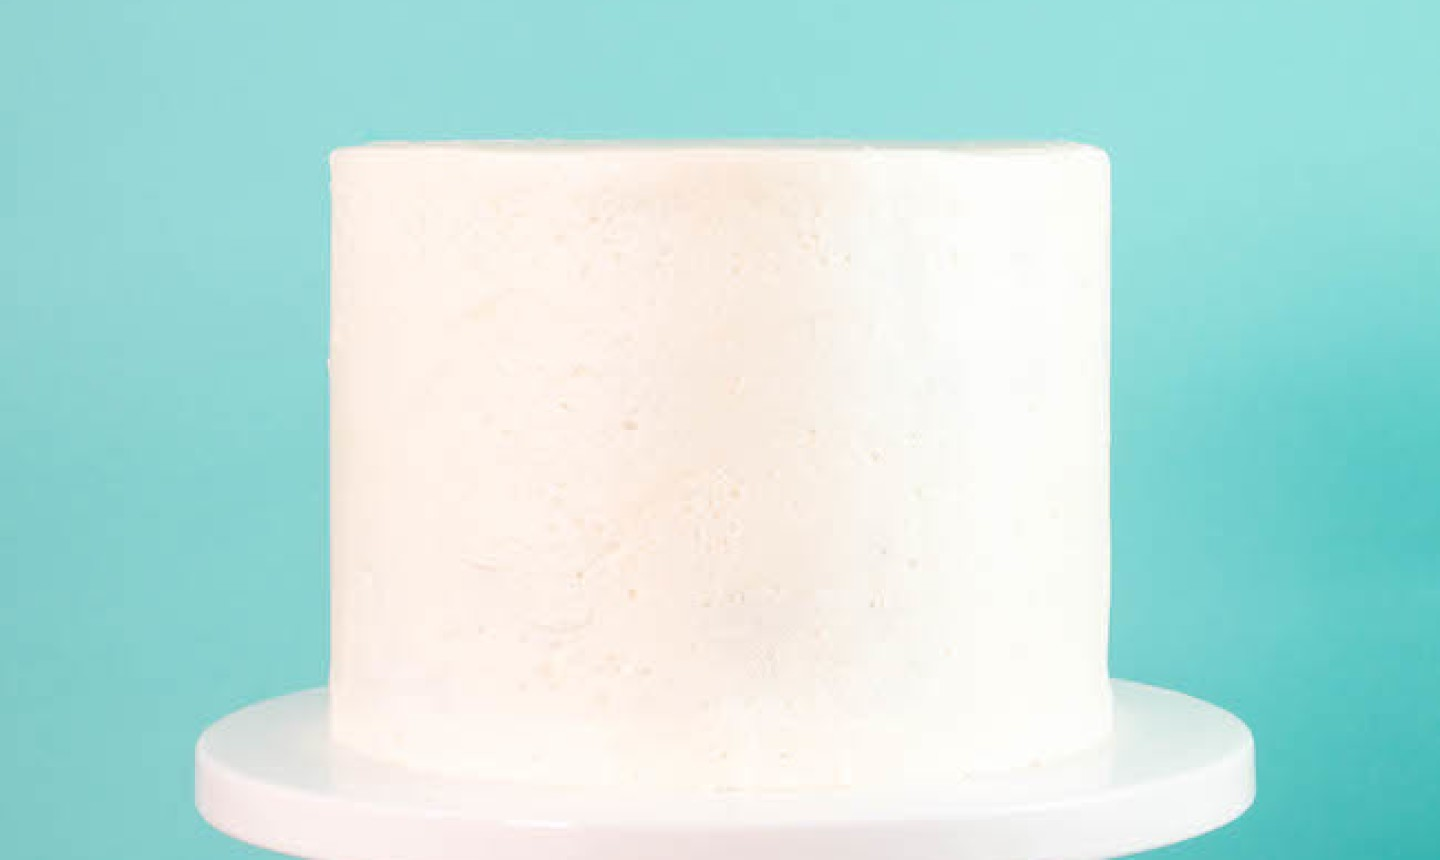 Cake with white frosting